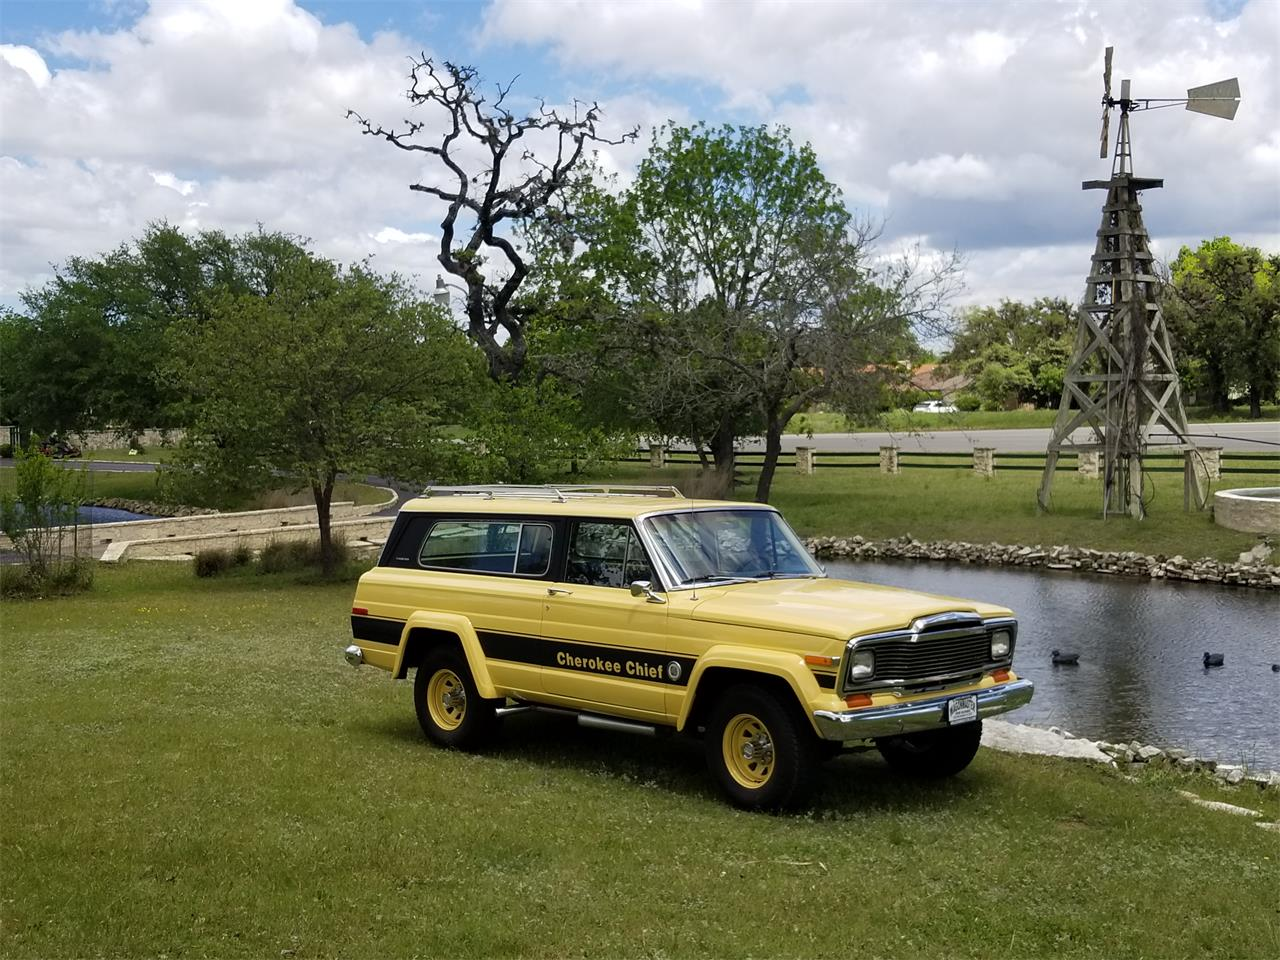 1979 Jeep Cherokee Chief for sale in Kerrville, TX – photo 35